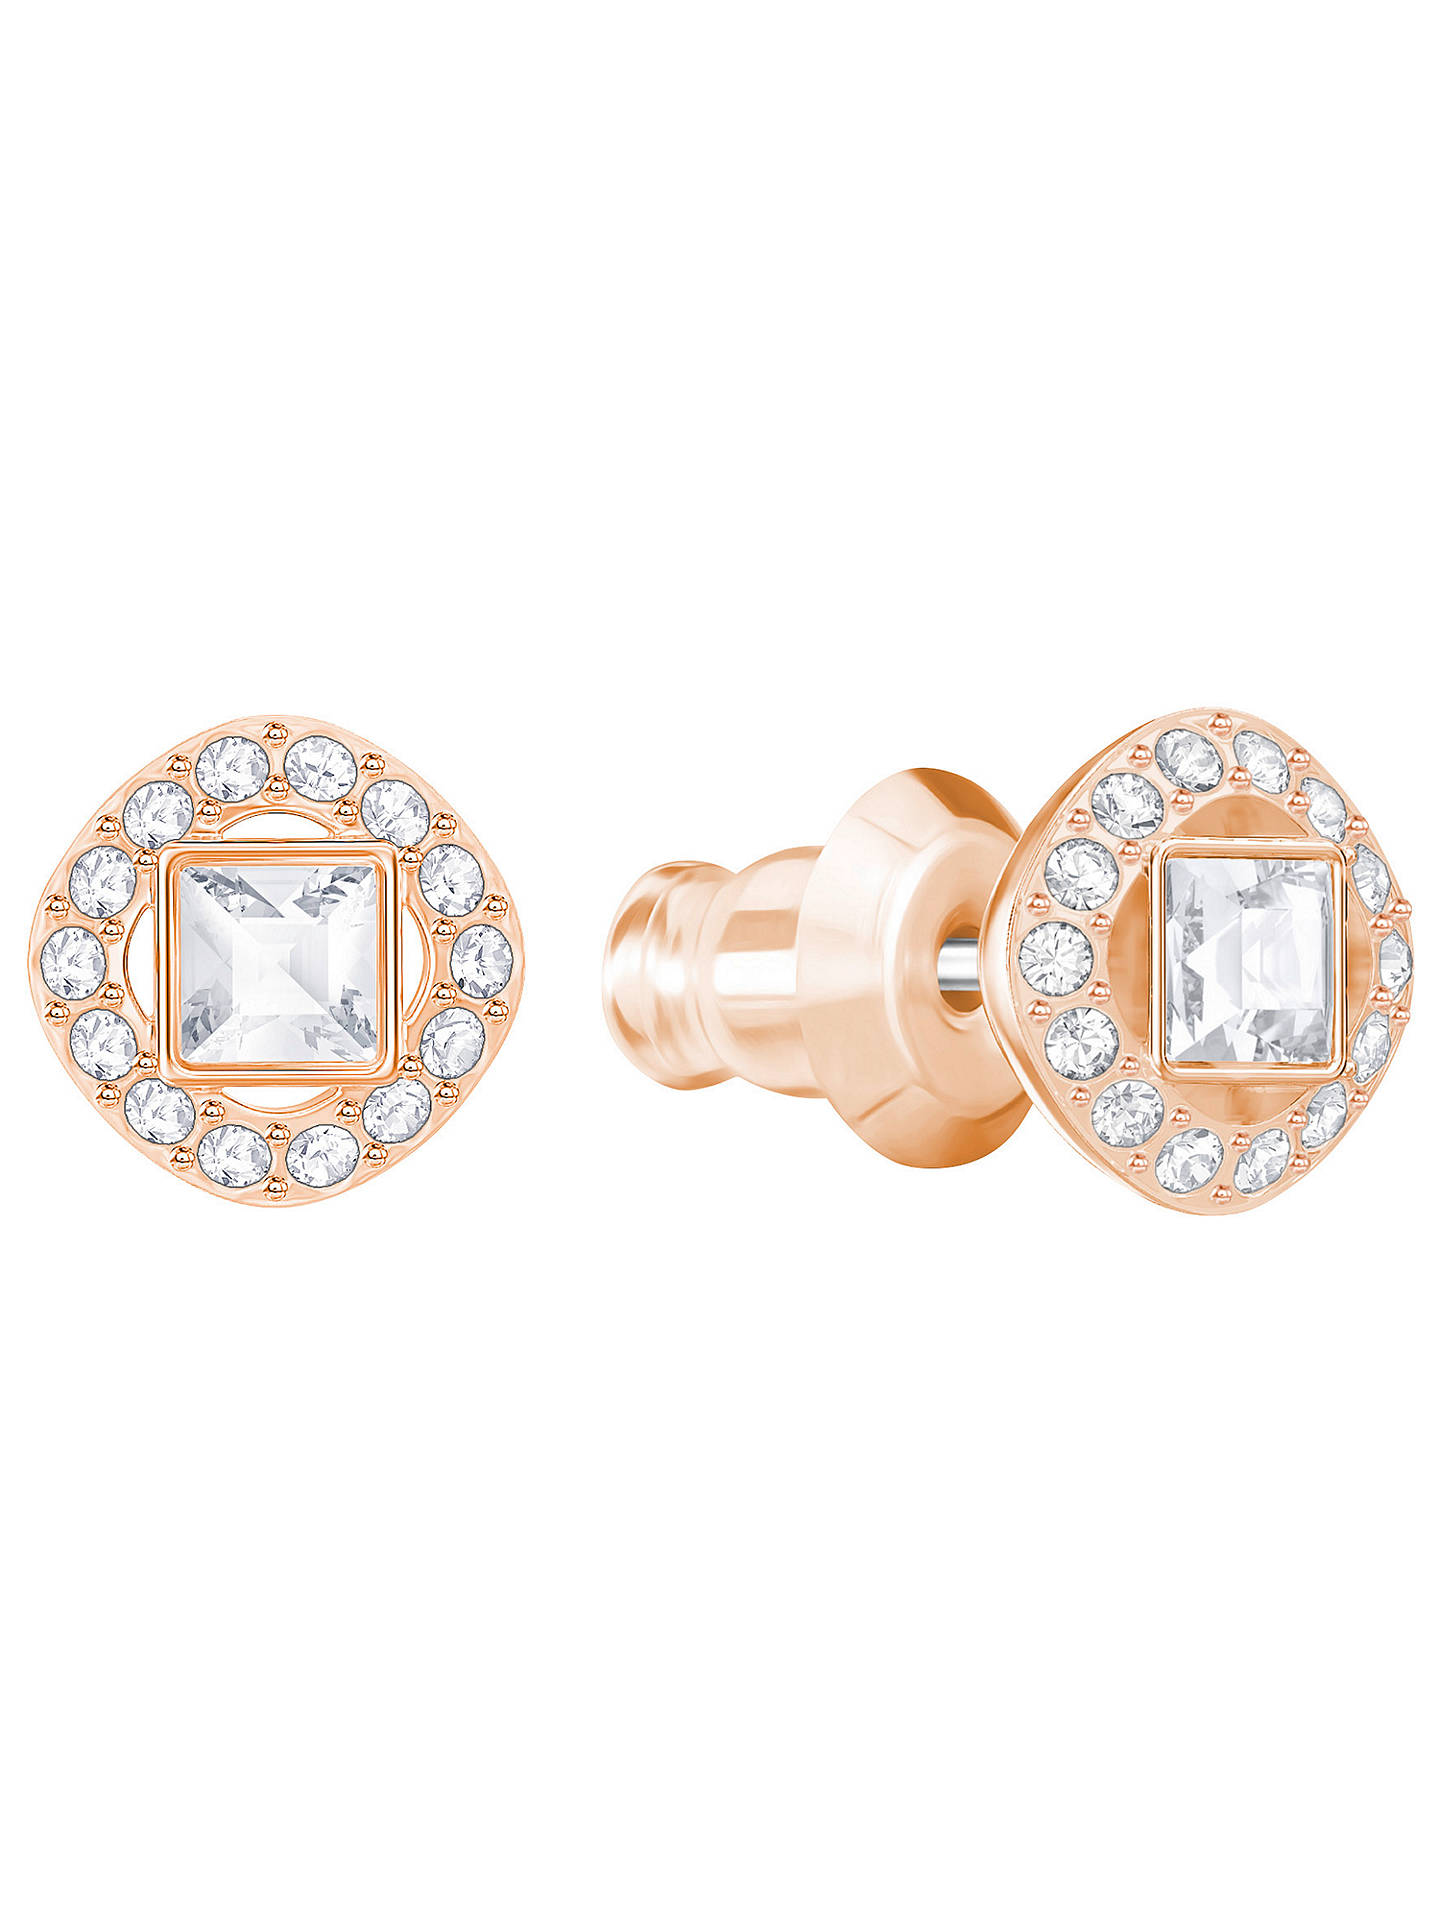 c7001a6b0a9fb Swarovski Angelic Square Crystal Stud Earrings, Rose Gold/Clear